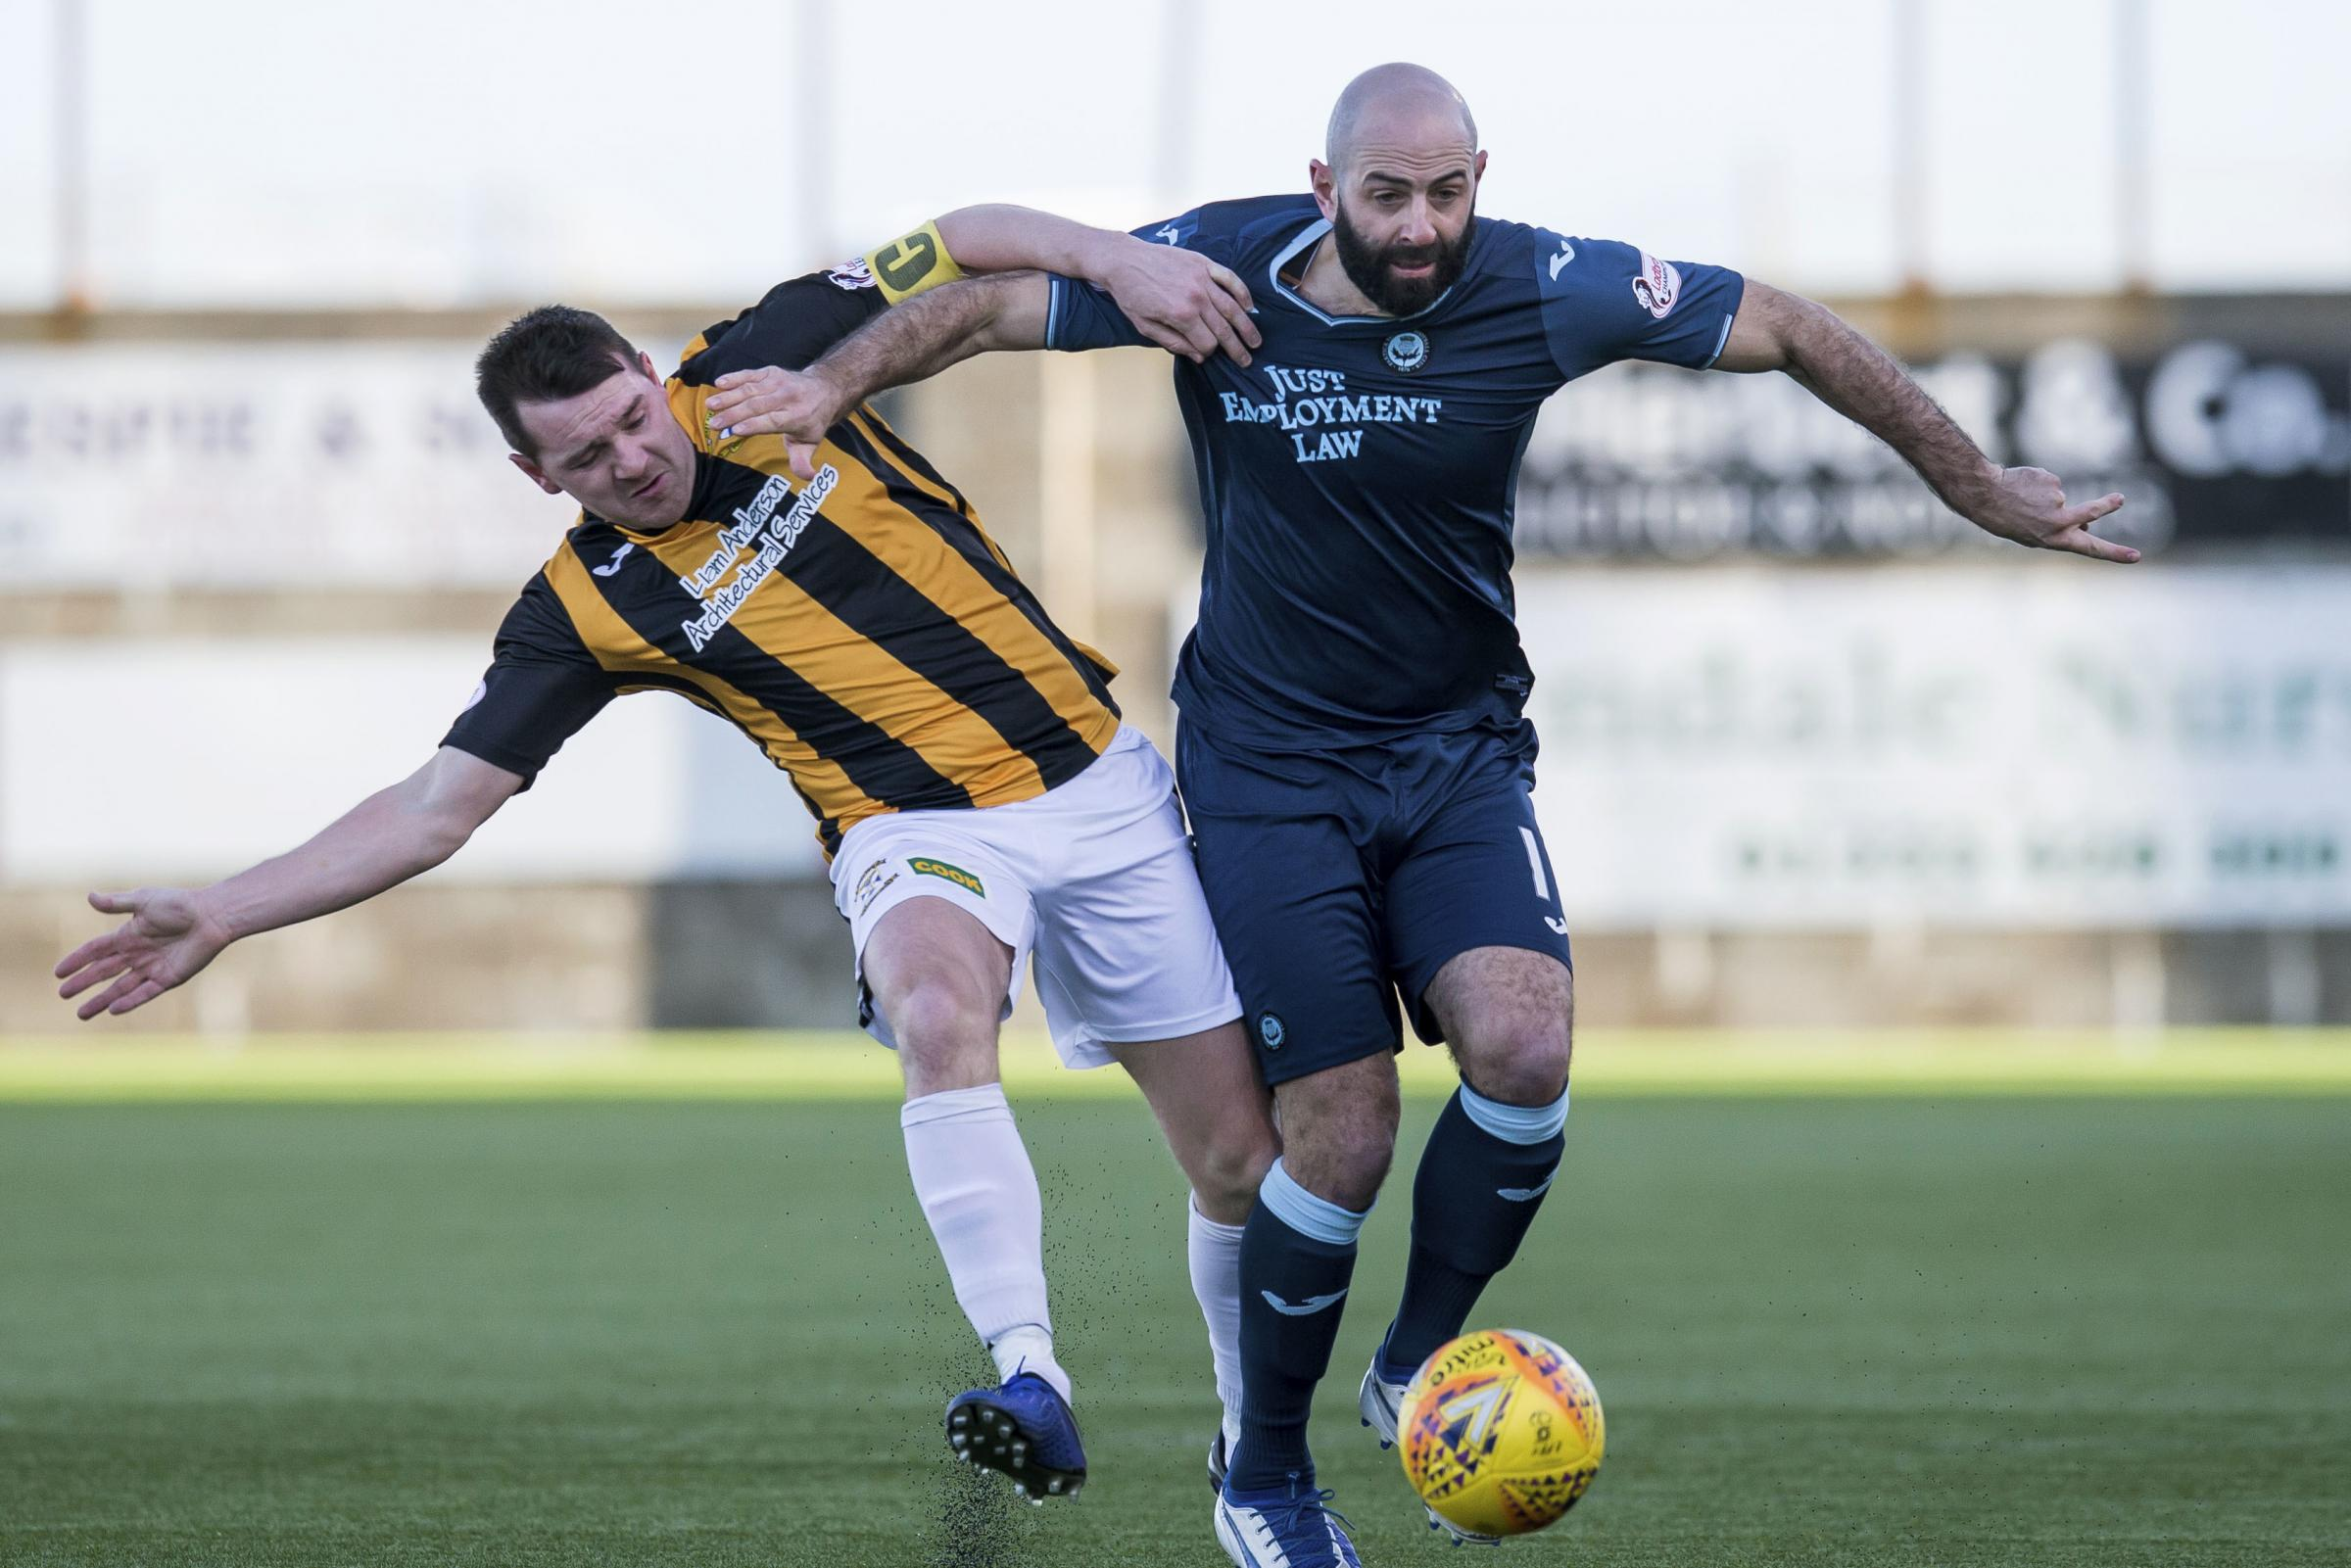 Gary Harkins determined to remain unbeaten in his second spell at Partick Thistle